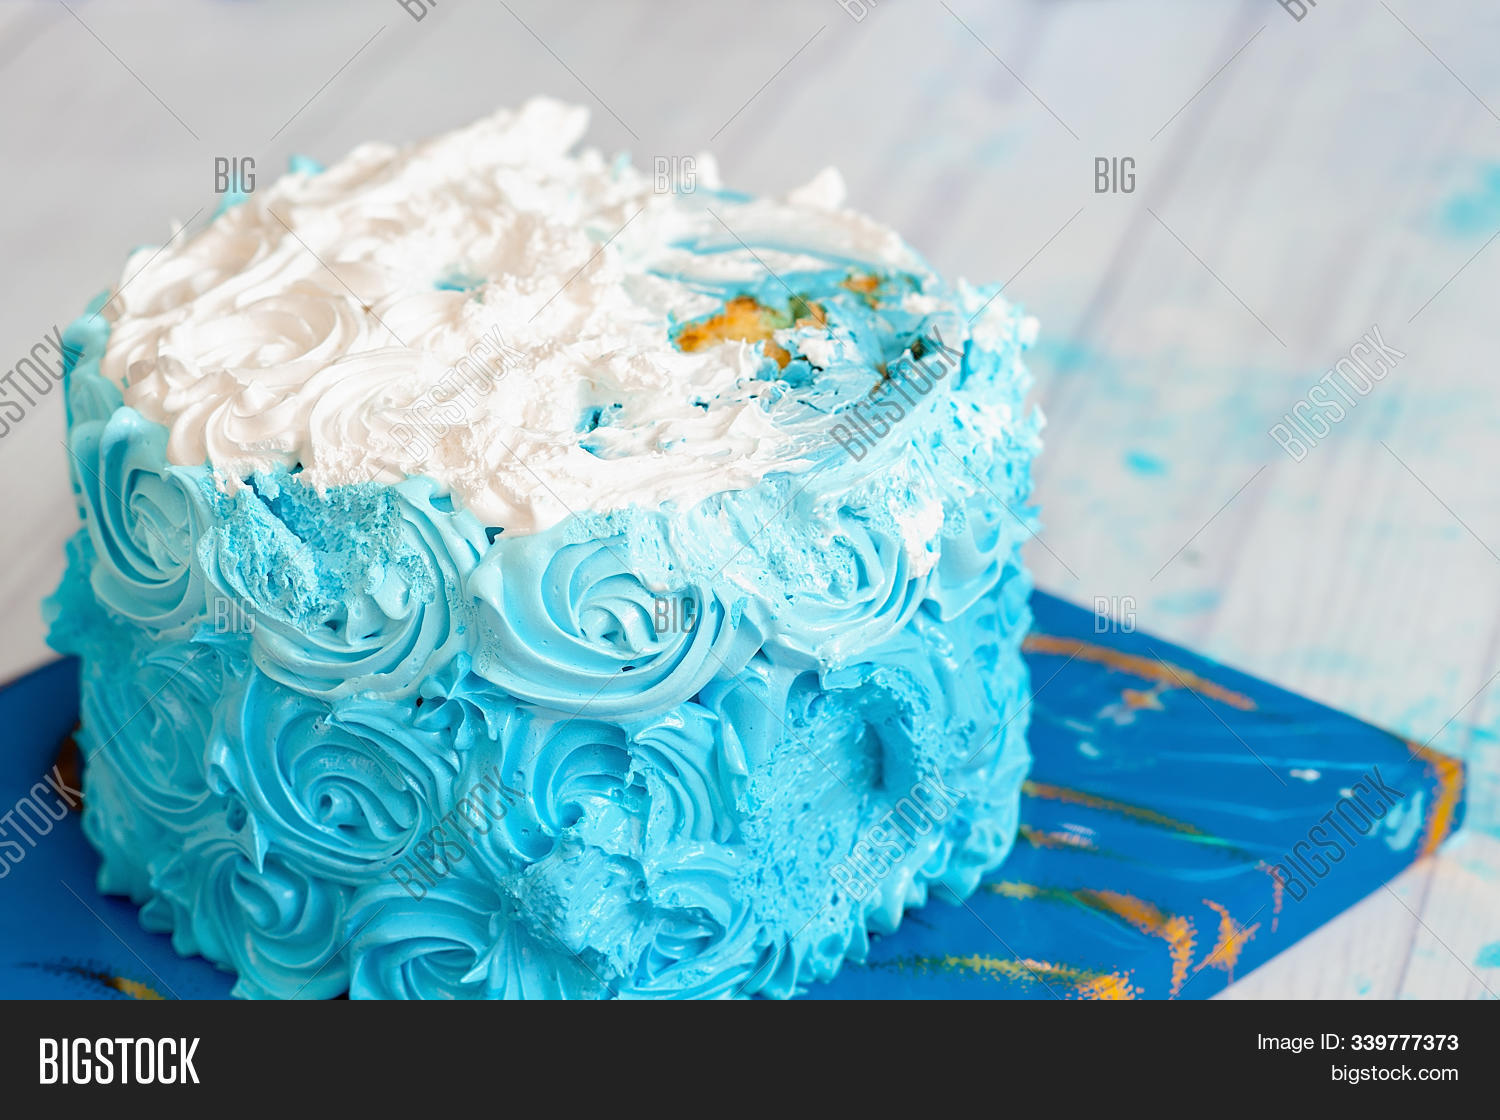 Tremendous Happy First Birthday Image Photo Free Trial Bigstock Funny Birthday Cards Online Elaedamsfinfo